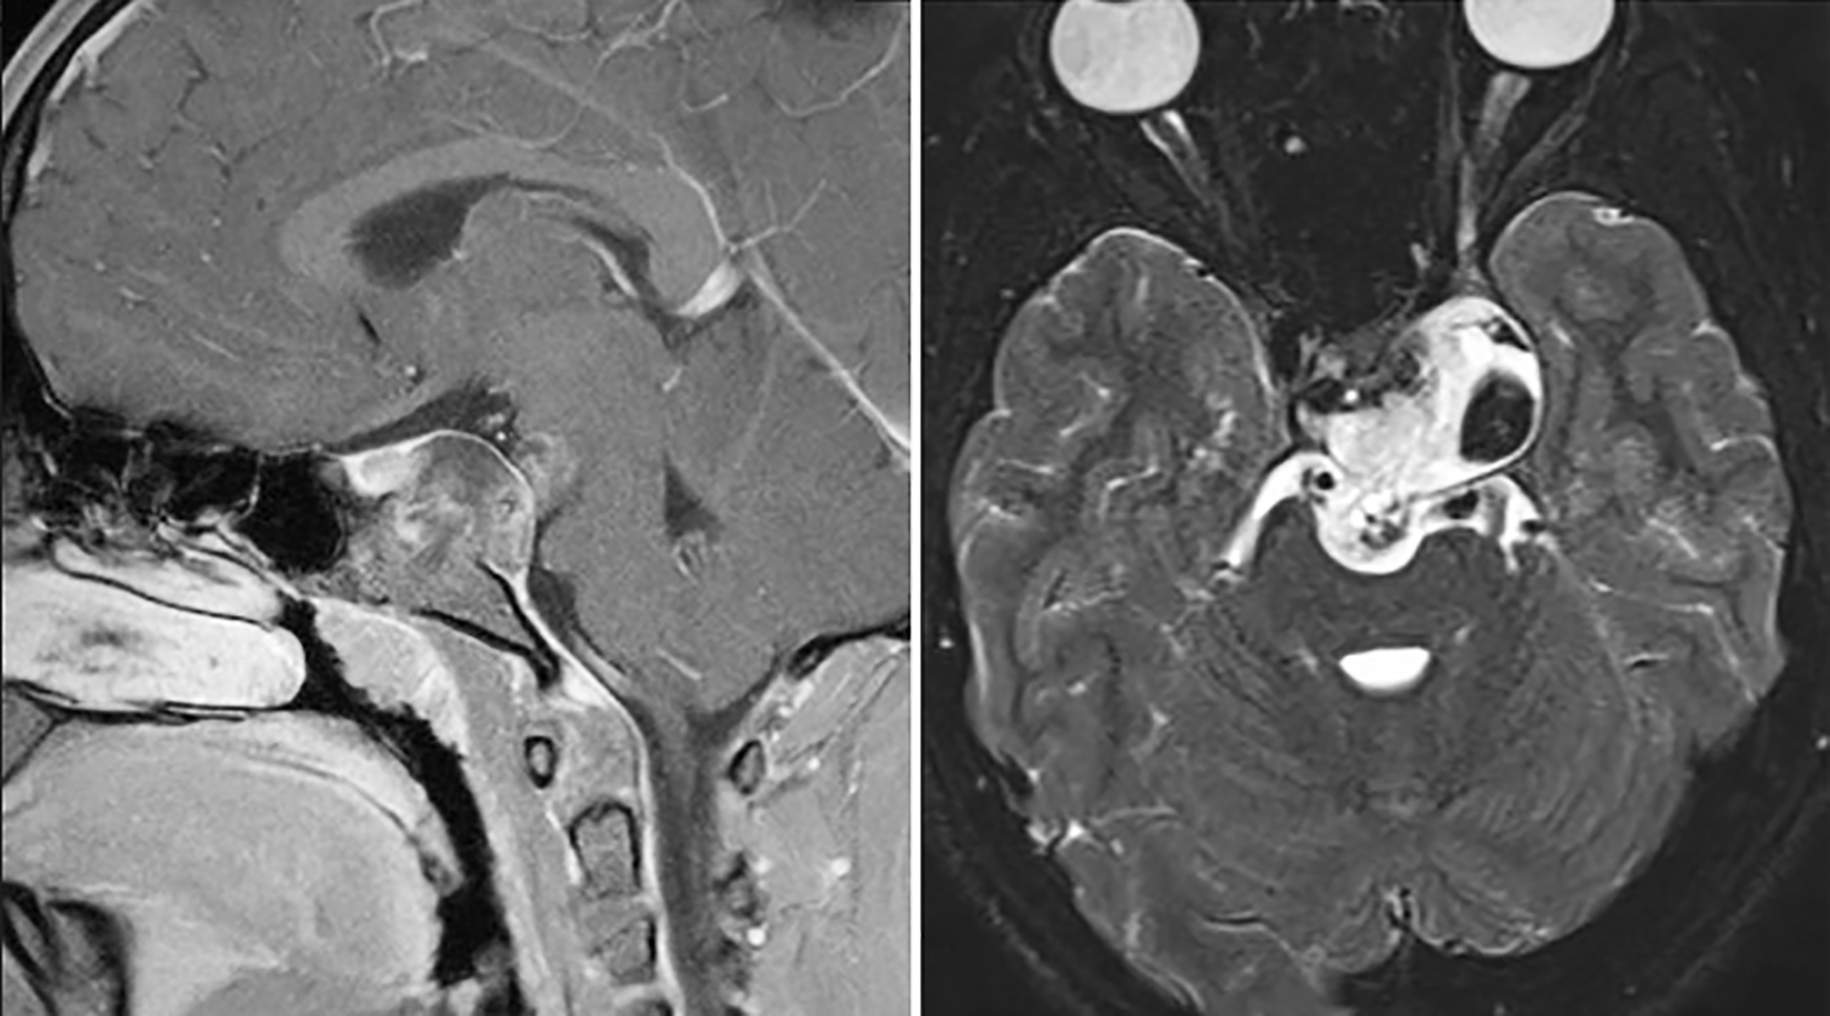 Figure 1. A chordoma is shown centered and pushing against normal brain on magnetic resonance imaging (MRI) from side (left) and top-down (right) views.